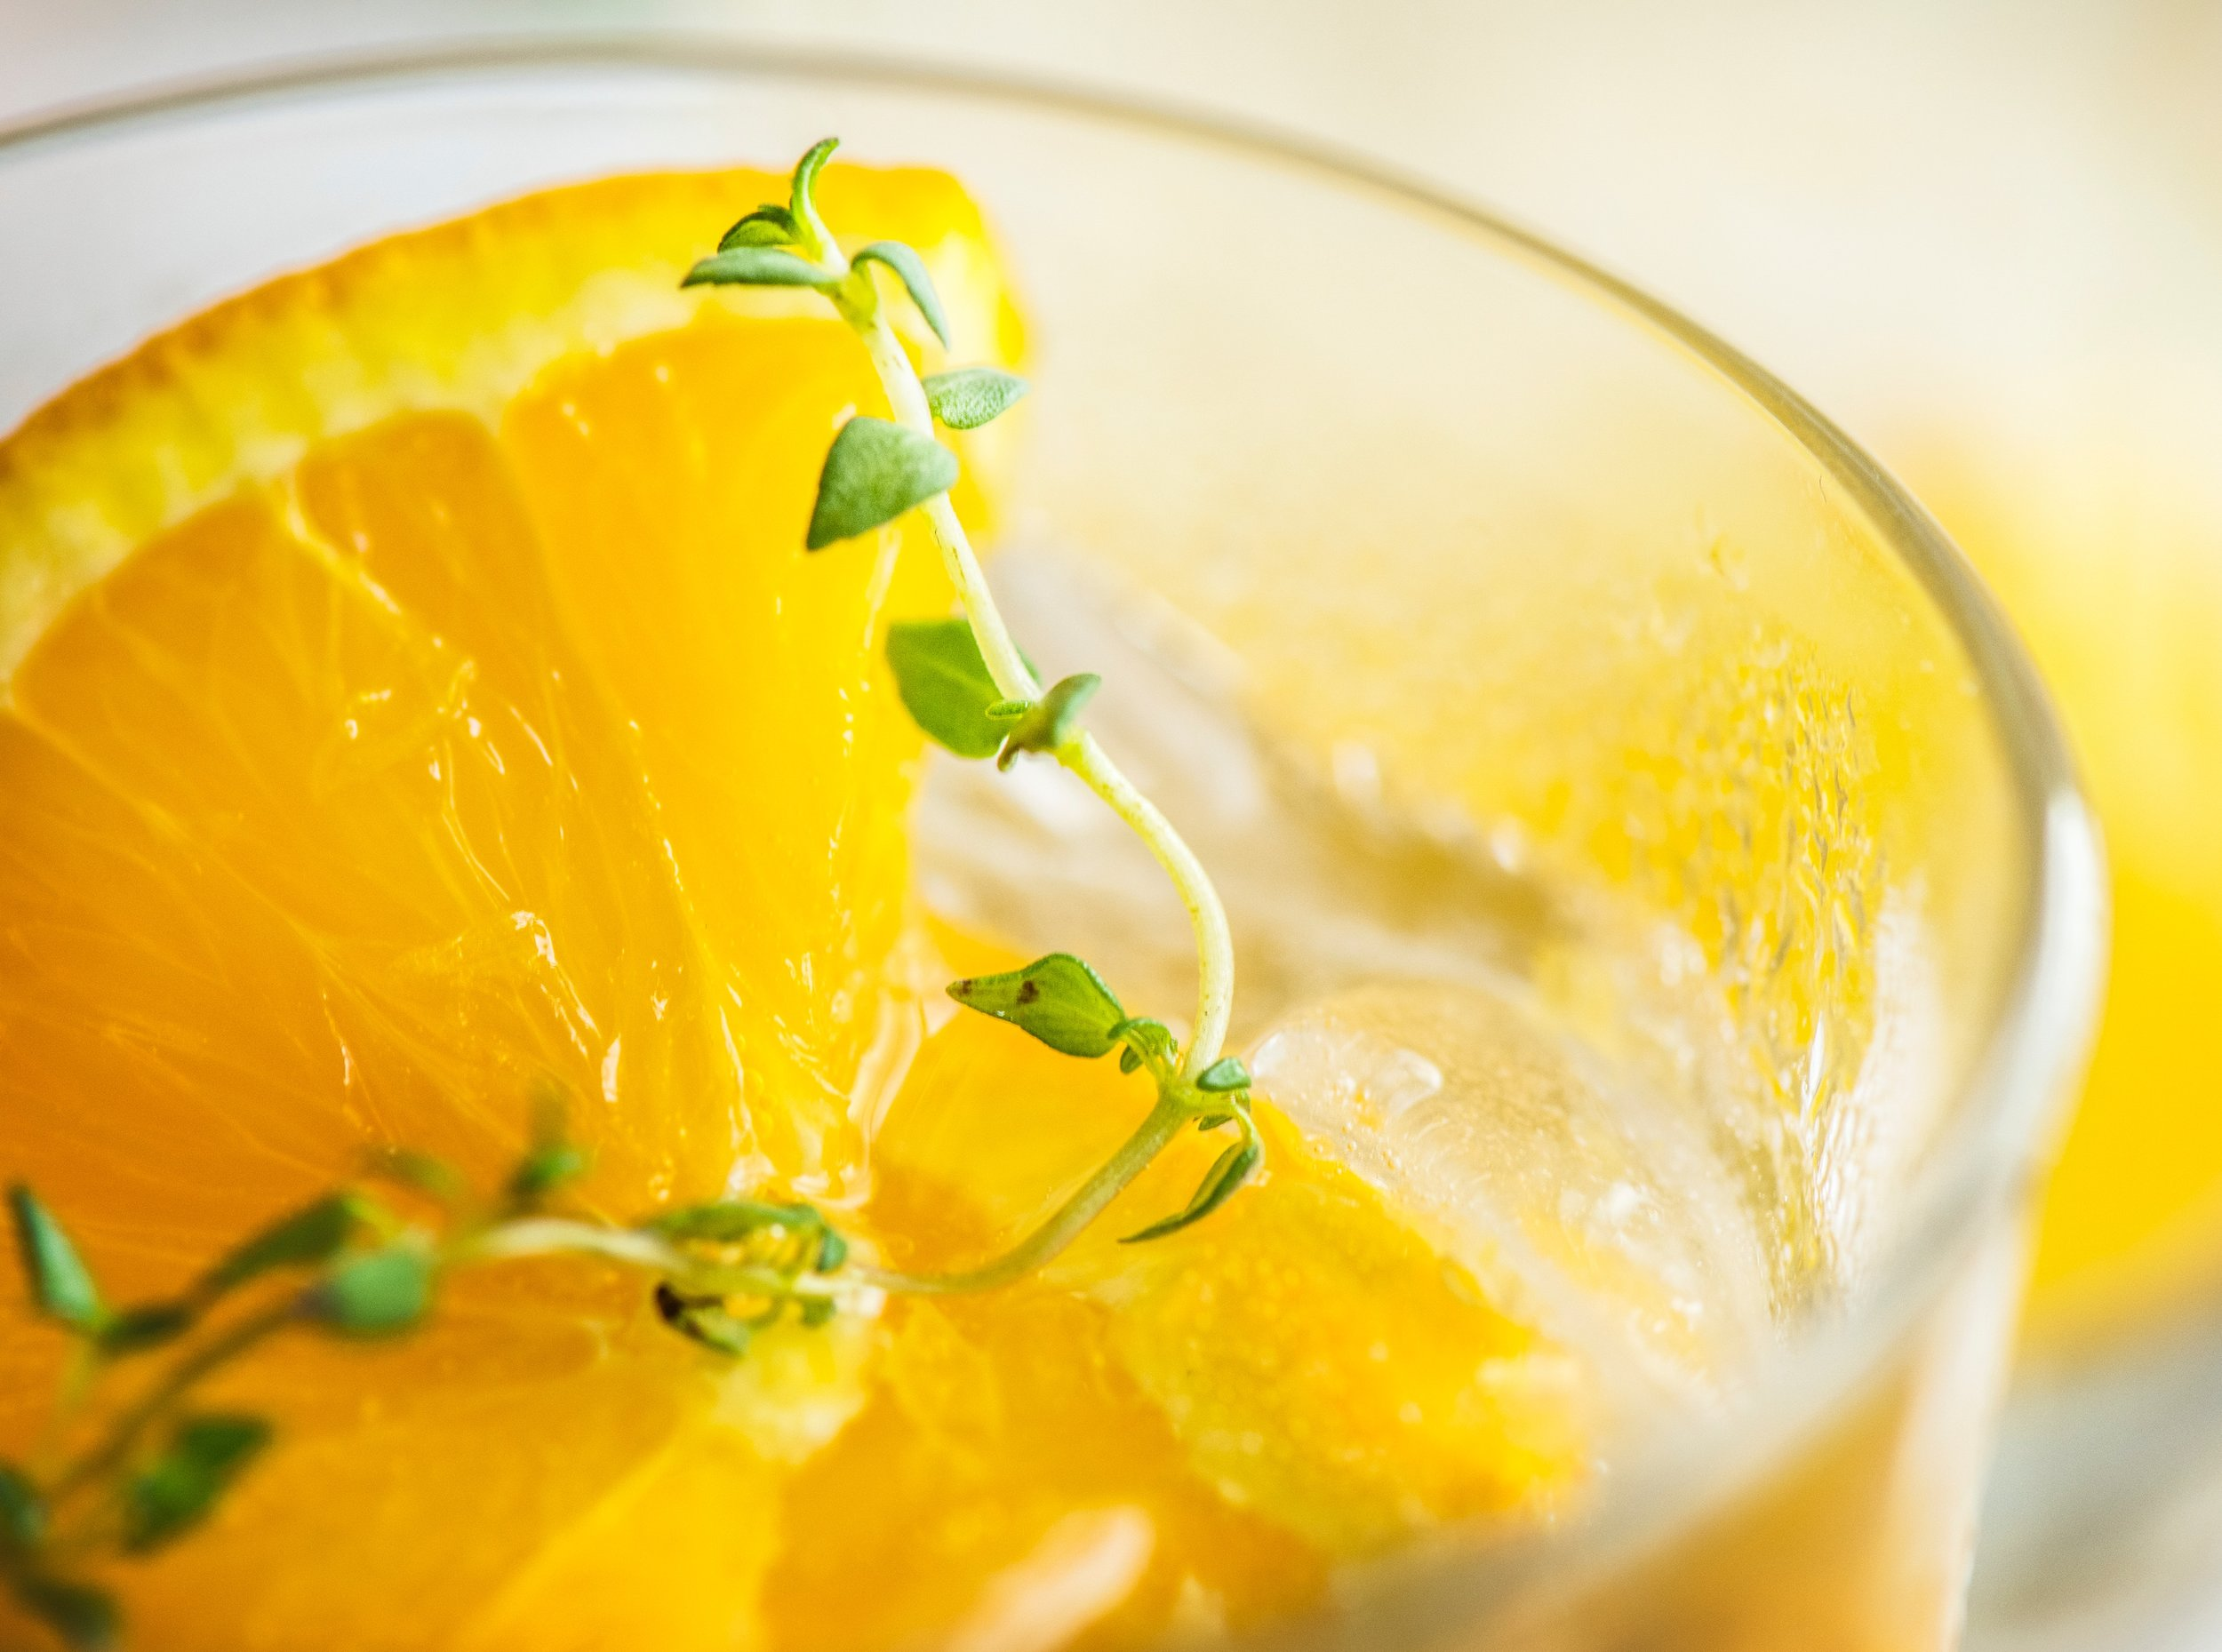 A glass of orange juice garnished with fresh thyme leaves